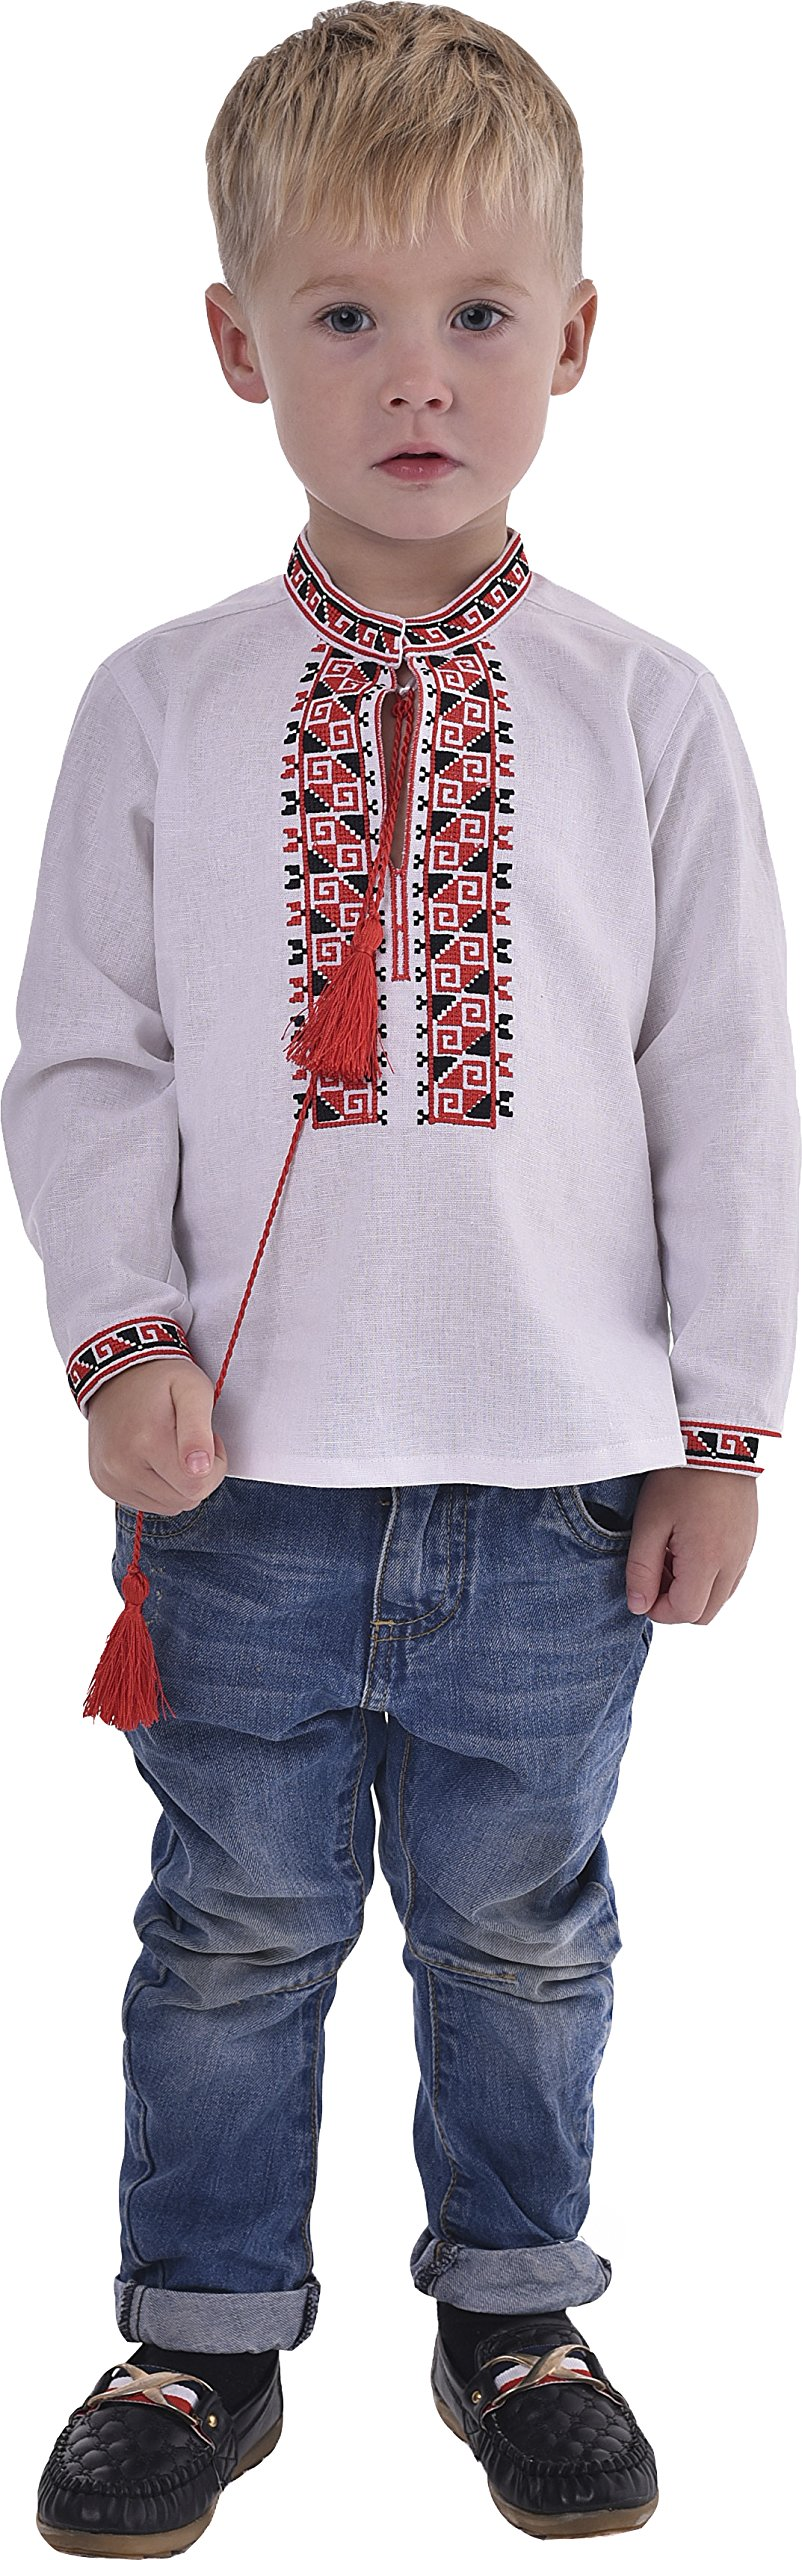 2kolyory Boys Shirts With Embroidery. Ukrainian Vyshyvanka. Children's Traditional Ukrainian Shirts With Collar For Boys. (2.5-3 Years)